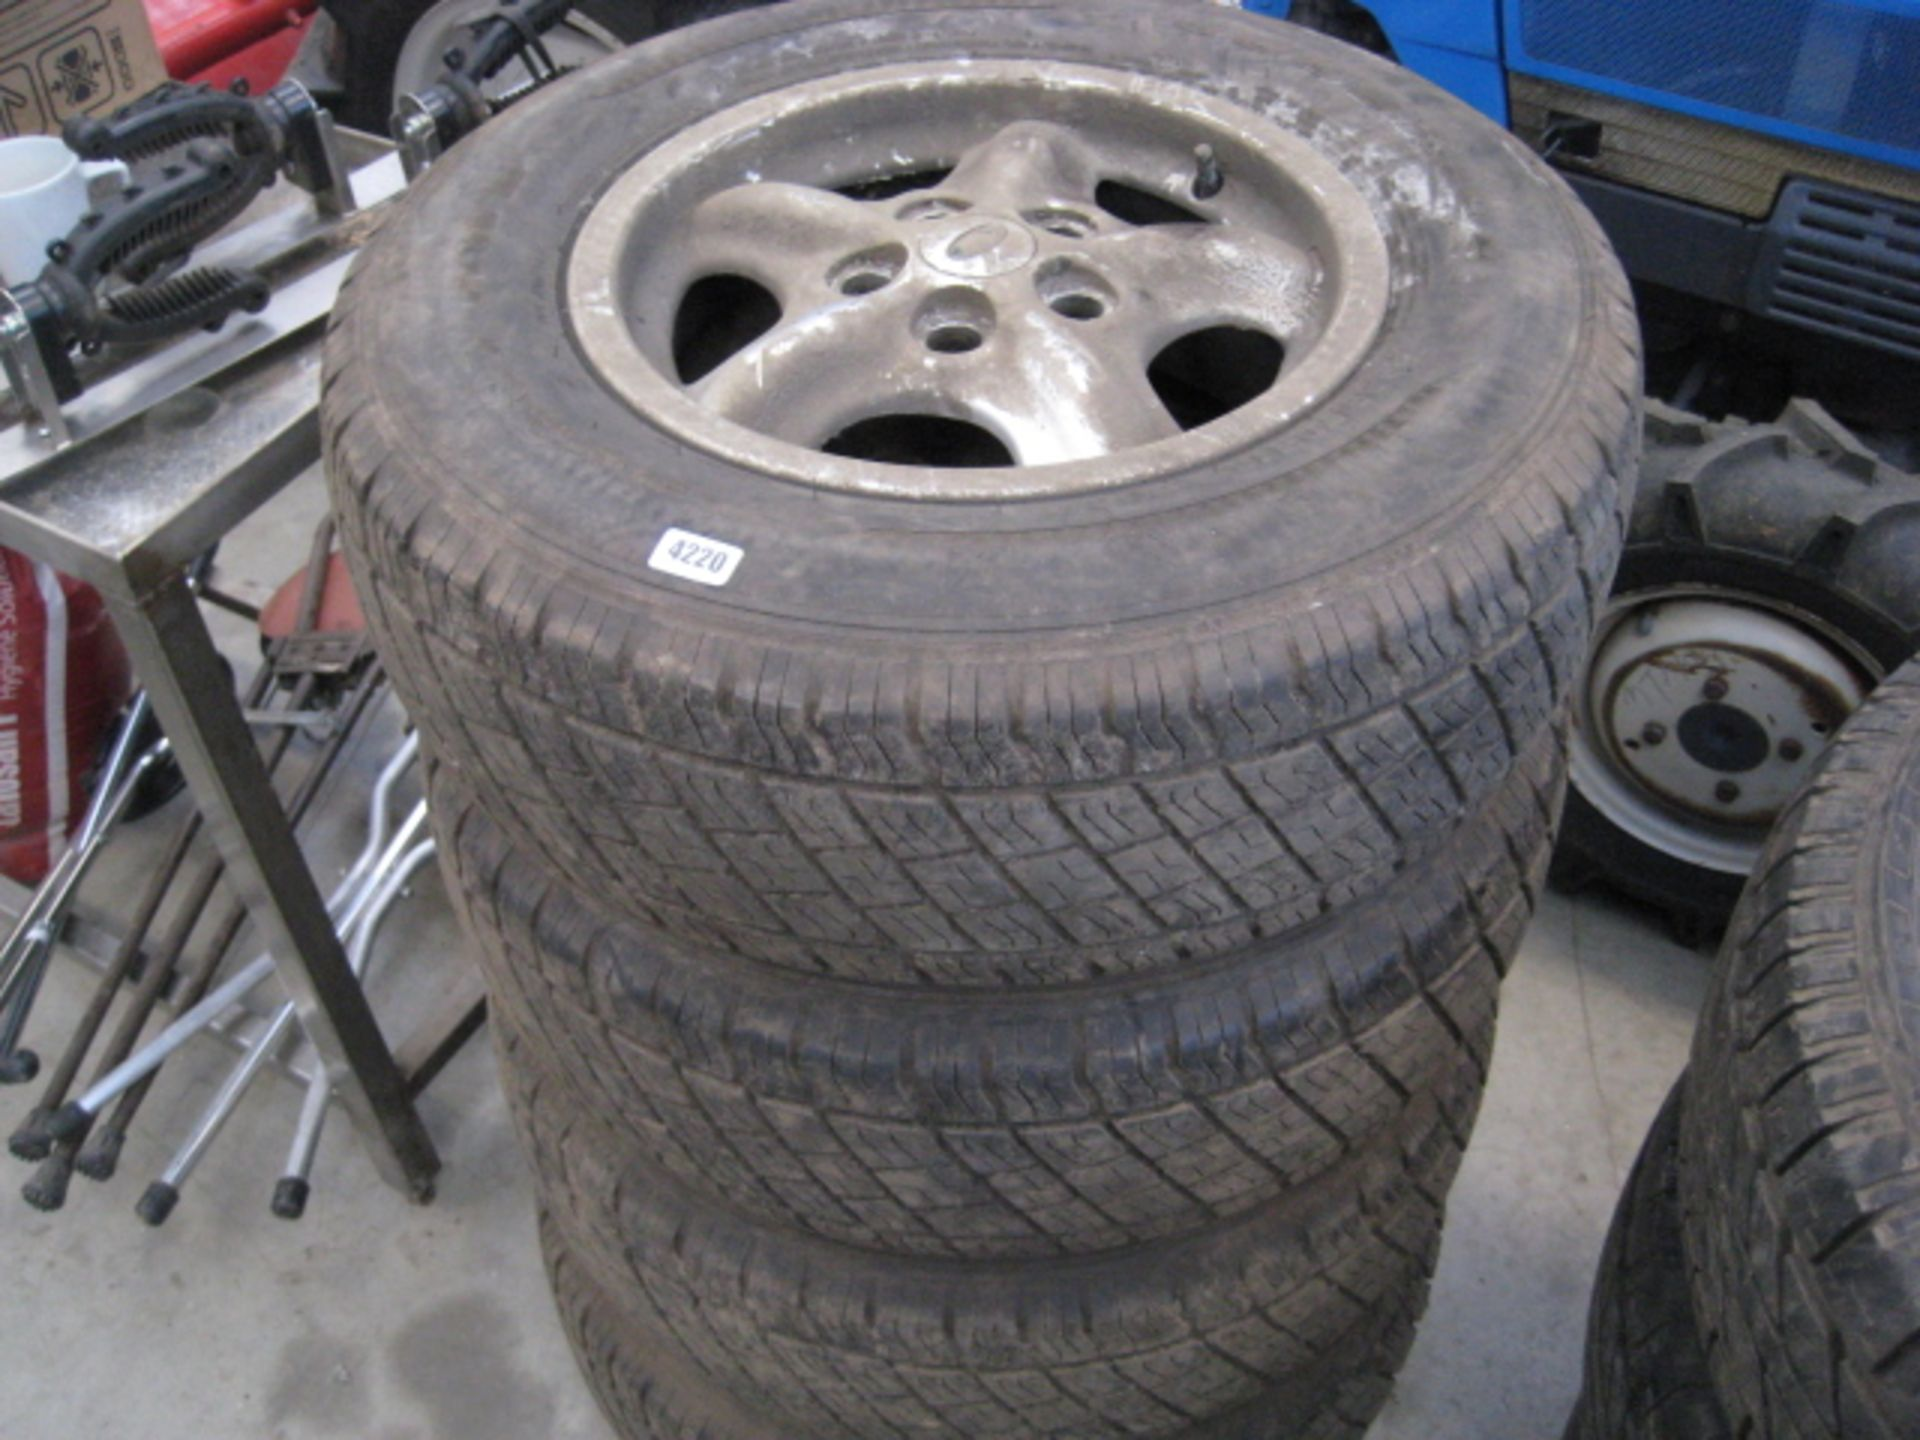 Lot 4220 - 4 Land Rover wheels and tyres size 235/70R16